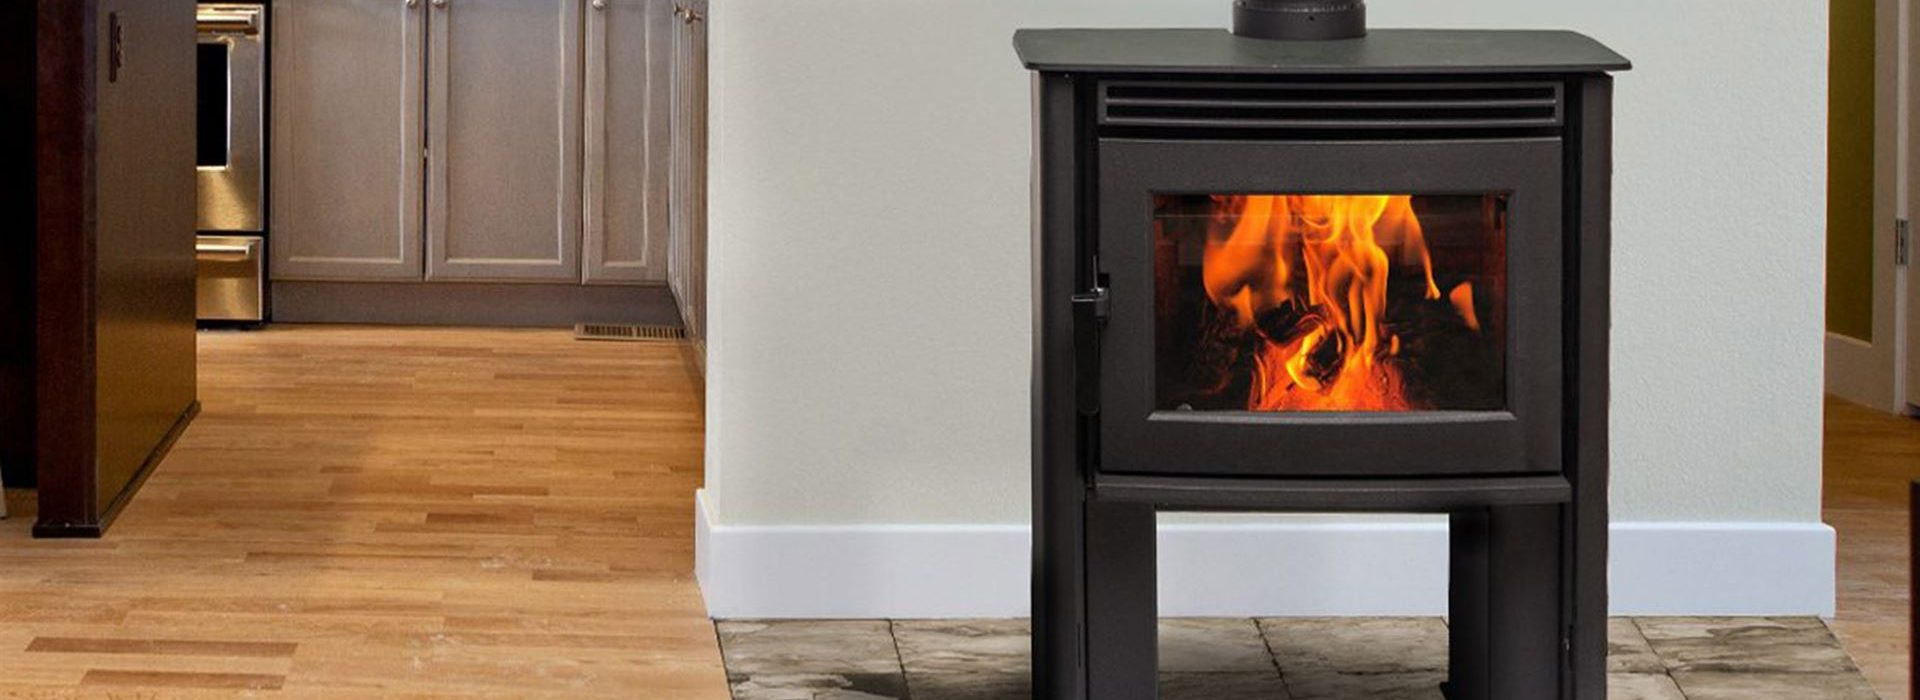 pacific energy wood stove heating